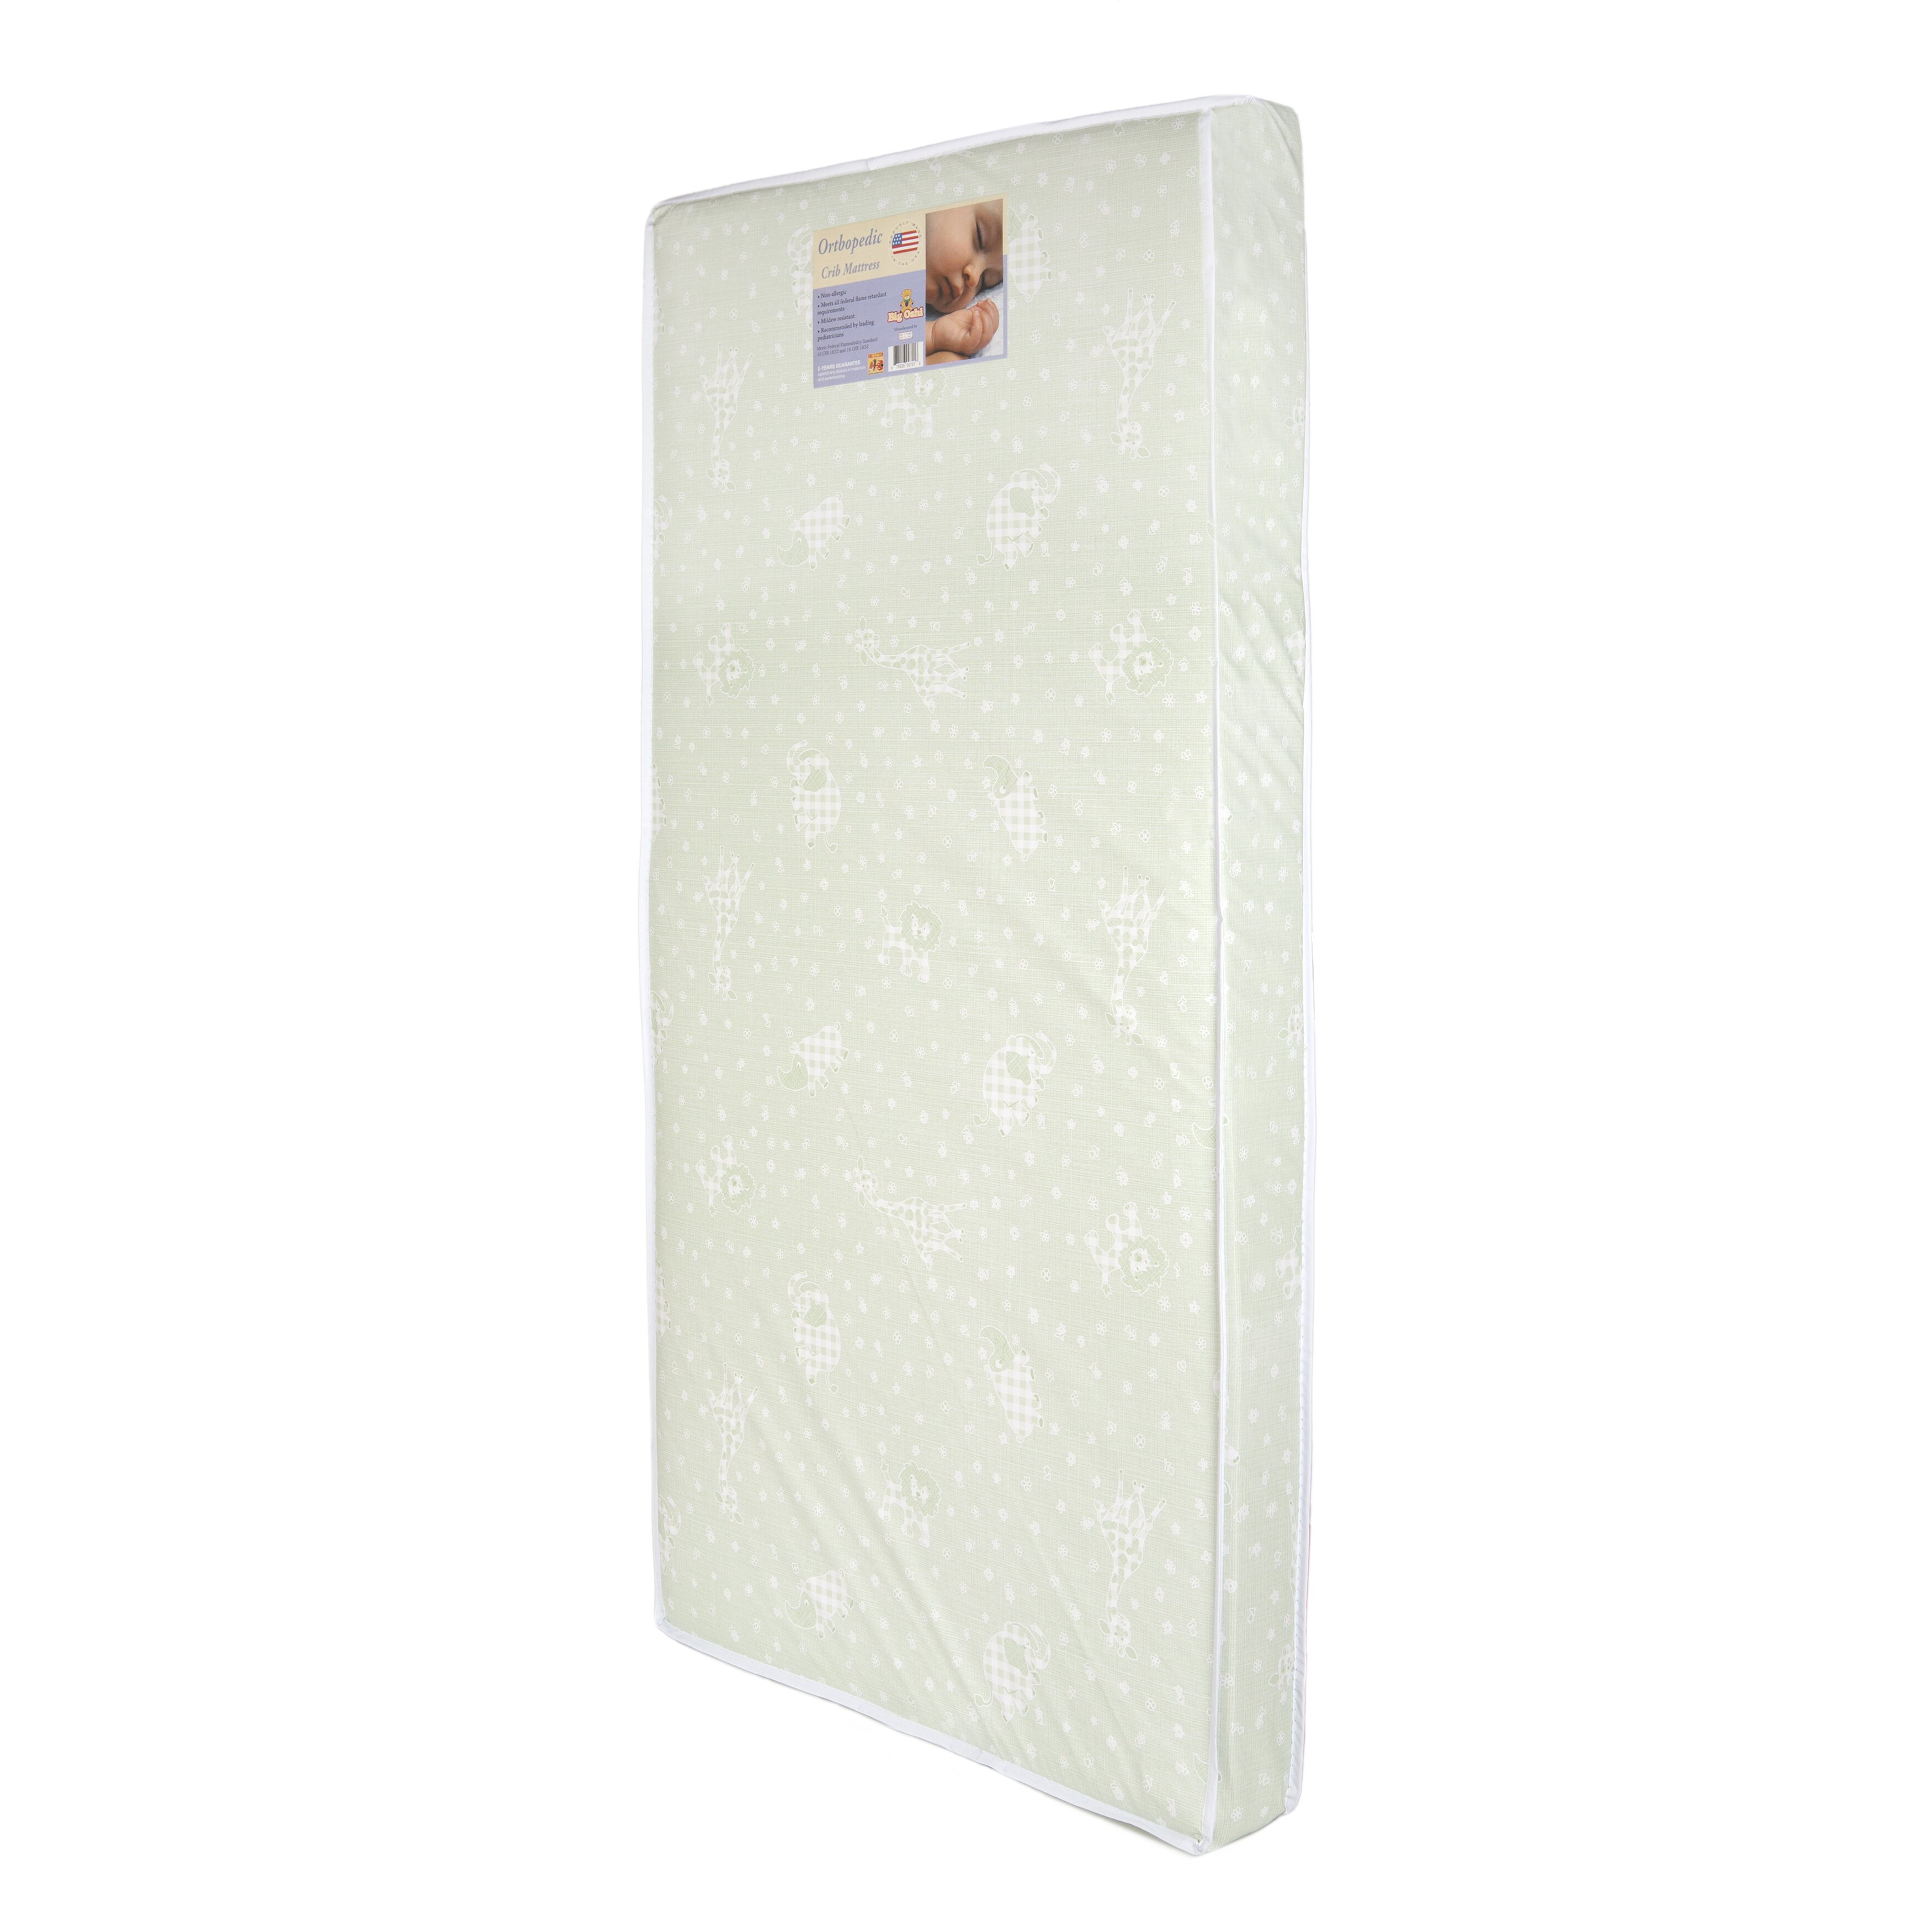 Baby cribs with mattress - Baby Time International Inc Big Oshi 4 Quot Crib And Toddler Mattress